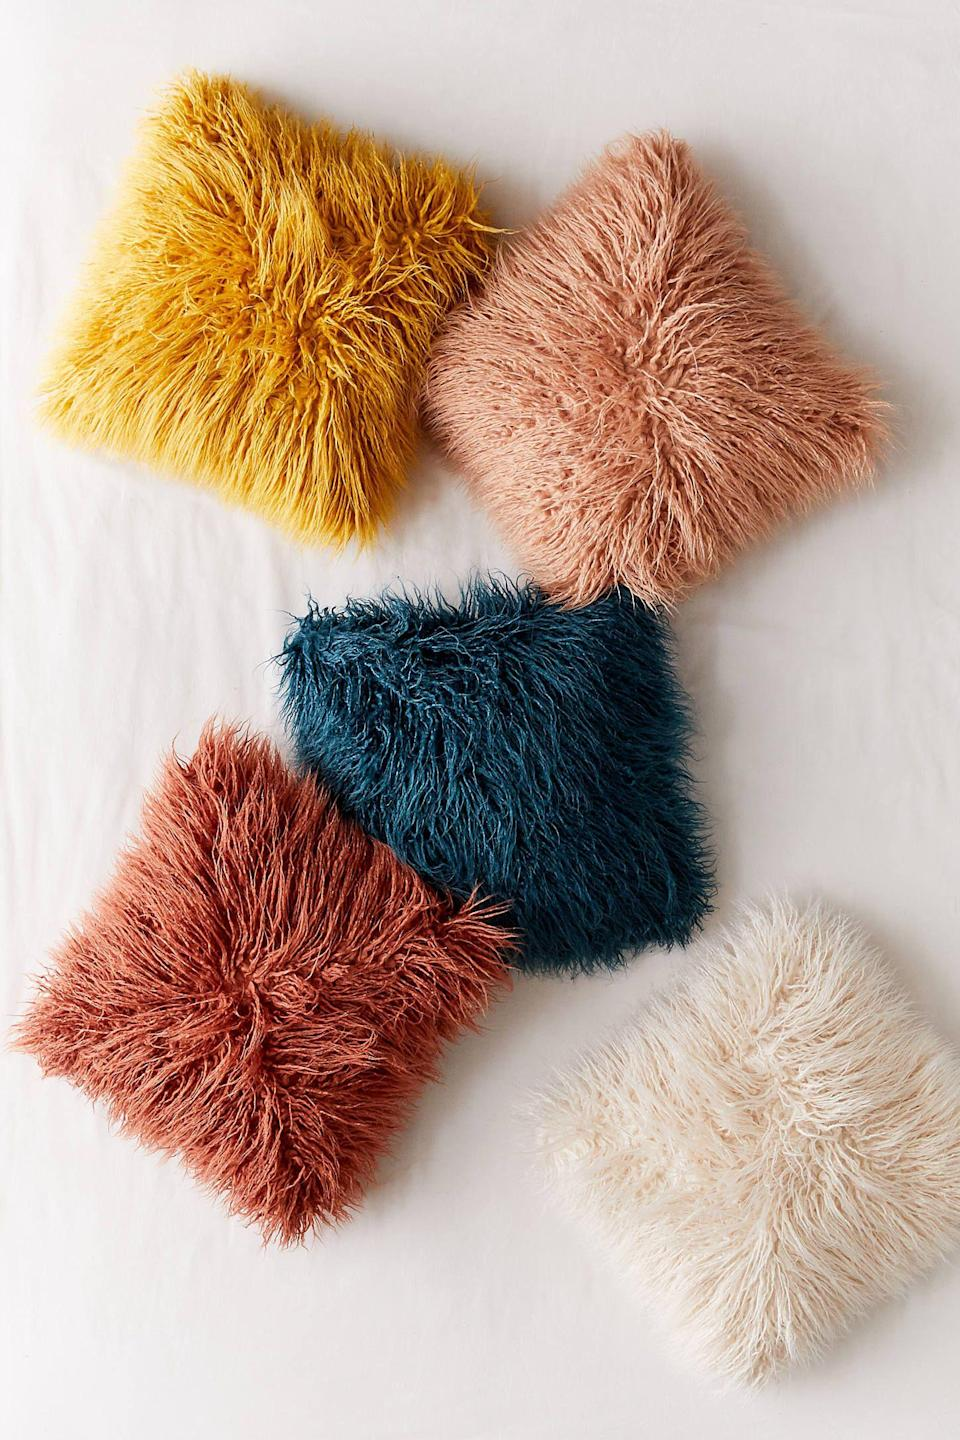 """<p><strong>Urban Outfitters</strong></p><p>urbanoutfitters.com</p><p><strong>$39.00</strong></p><p><a href=""""https://go.redirectingat.com?id=74968X1596630&url=https%3A%2F%2Fwww.urbanoutfitters.com%2Fshop%2Fmila-faux-fur-throw-pillow&sref=https%3A%2F%2Fwww.housebeautiful.com%2Fdesign-inspiration%2Fg33301831%2Fvsco-room-ideas%2F"""" rel=""""nofollow noopener"""" target=""""_blank"""" data-ylk=""""slk:BUY NOW"""" class=""""link rapid-noclick-resp"""">BUY NOW</a></p><p>No VSCO-inspired bedroom is complete without a few fluffy throw pillows. These options from Urban Outfitters come in soothing colors that'll make you want to curl up in bed for hours on end.</p>"""